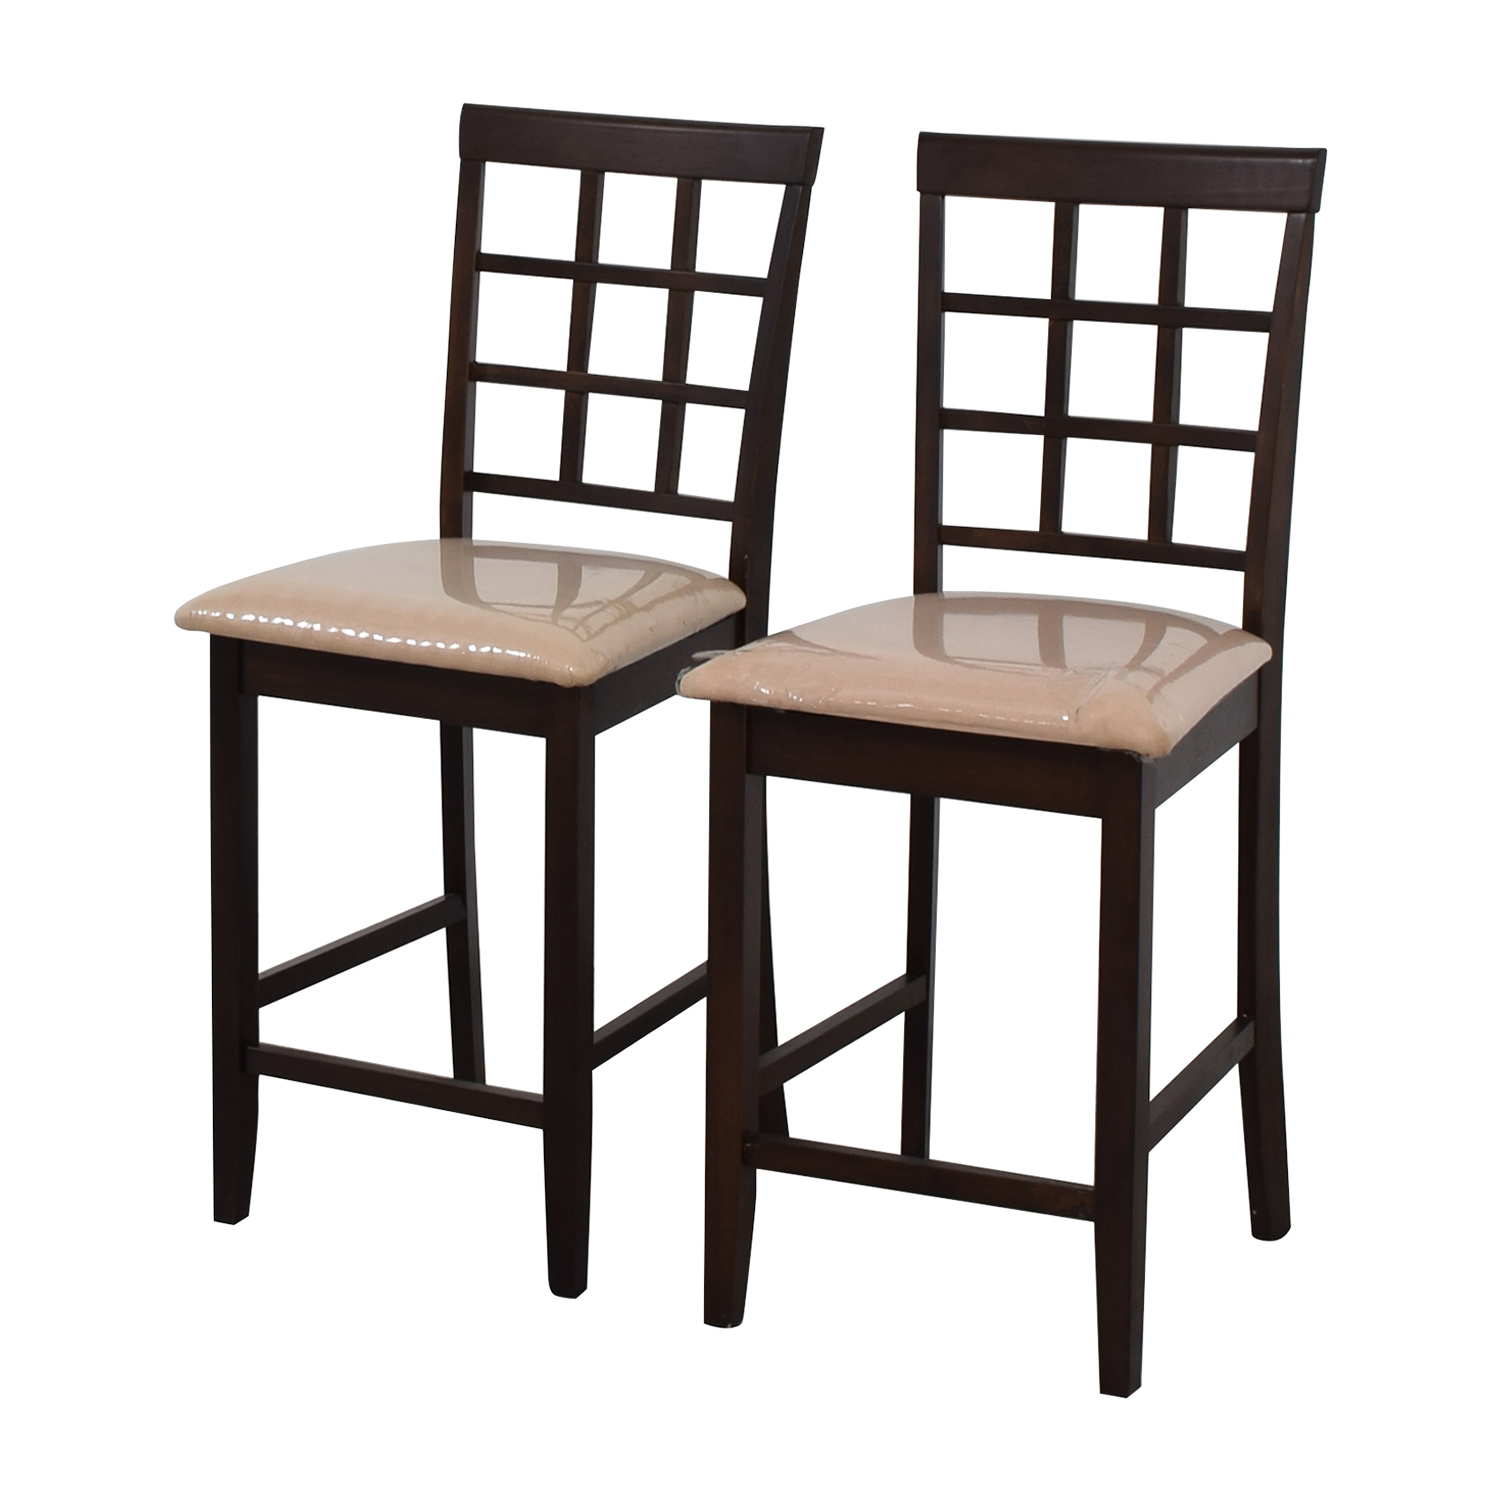 buy Cappuccino Counter Height Chairs Stools